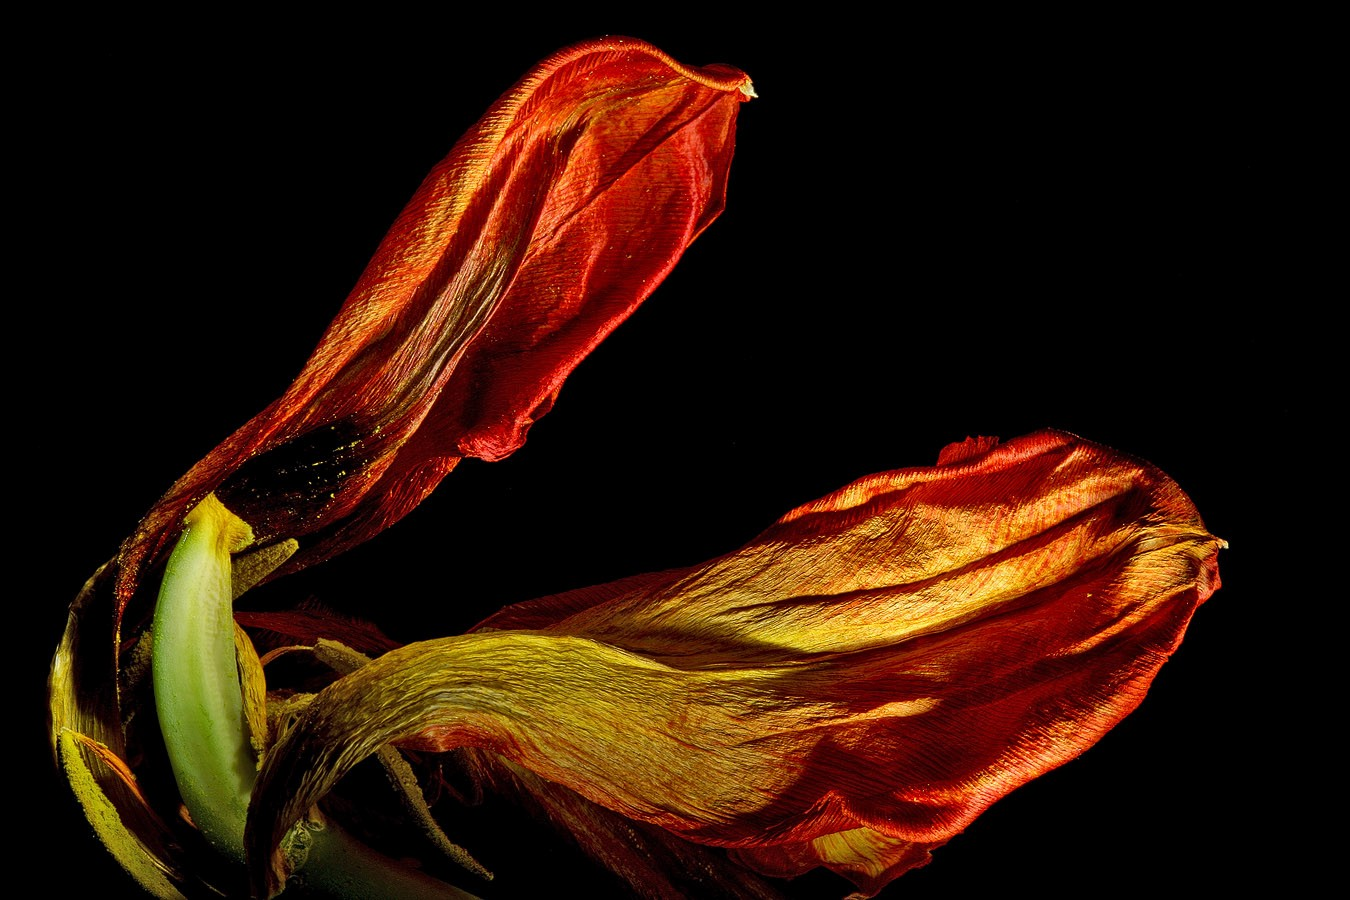 dried tulip img aw author sava gregory and verena